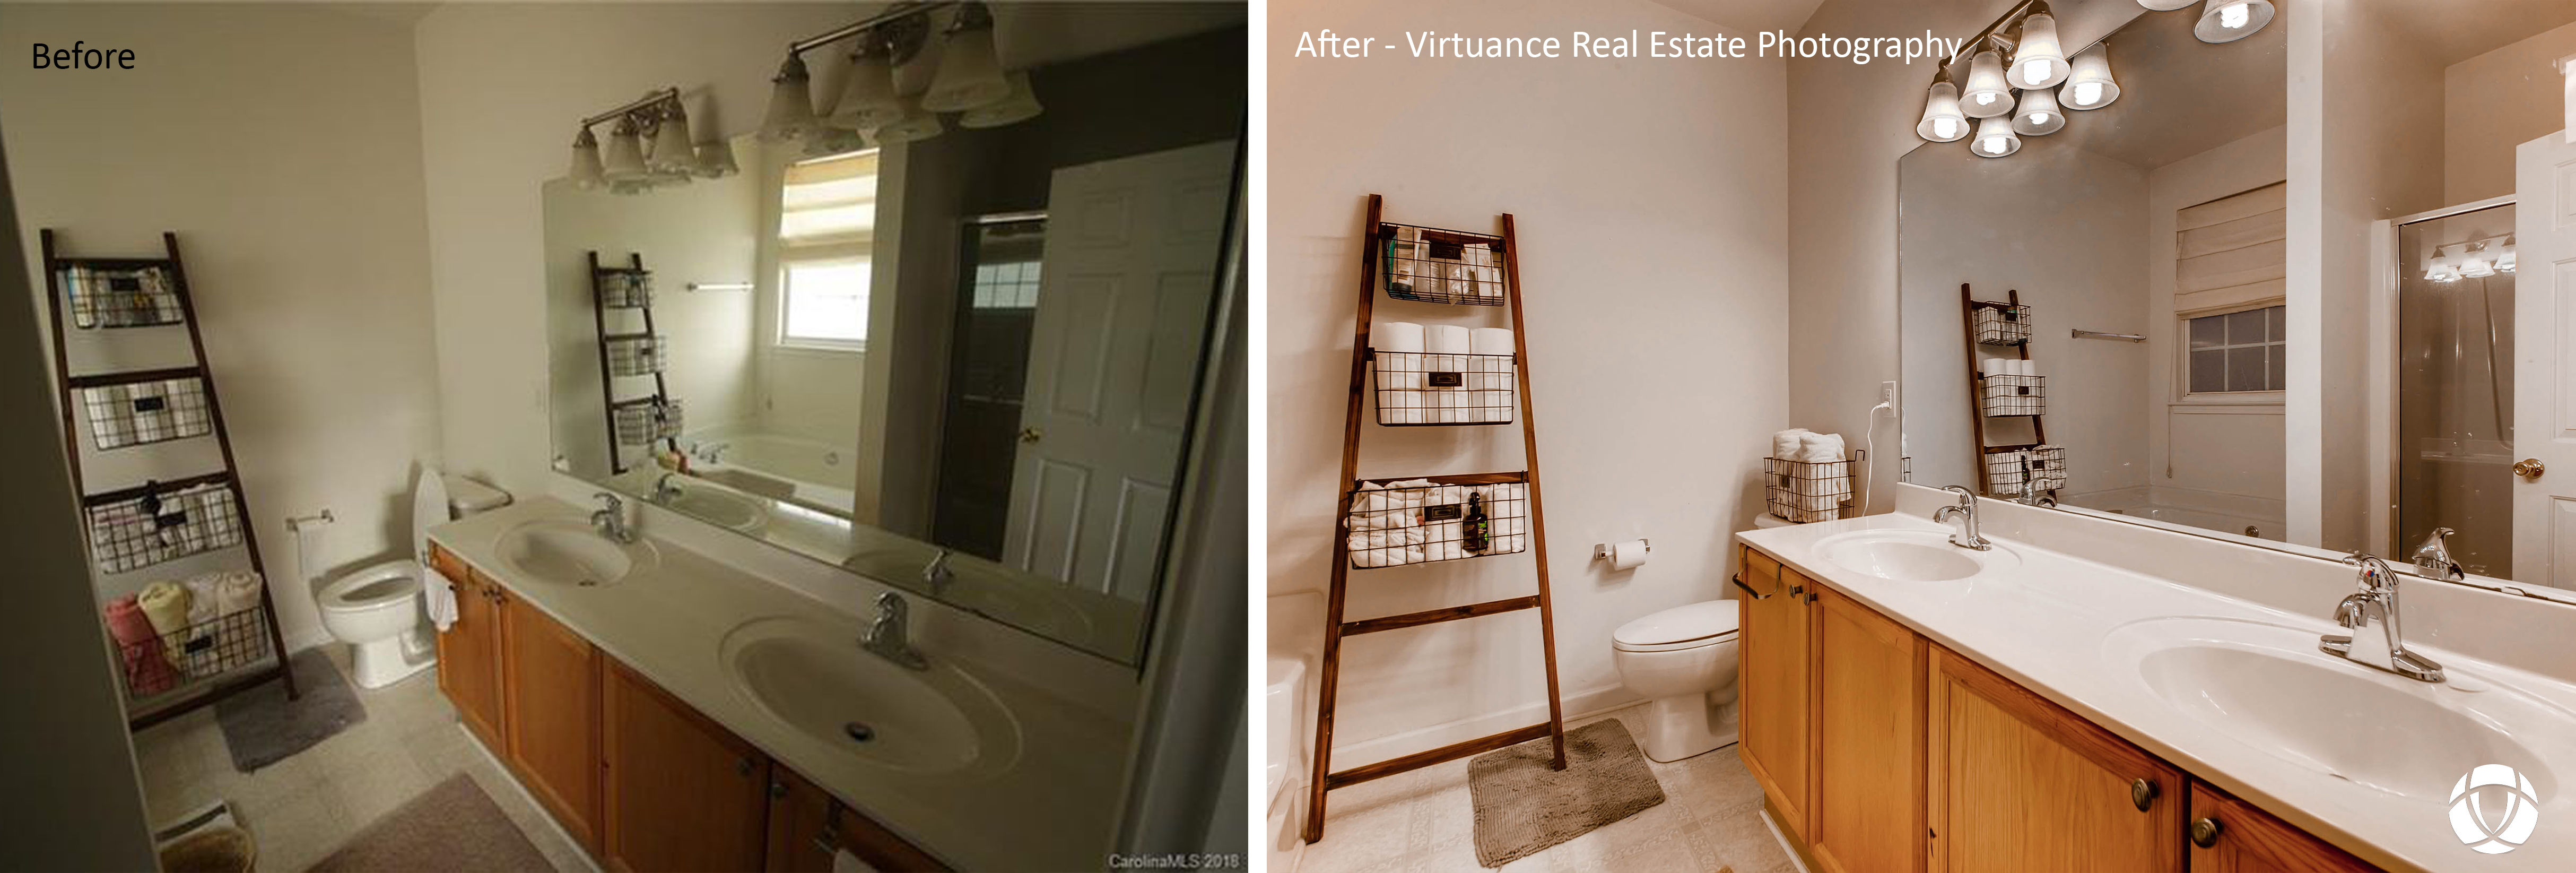 images_wrecking_vacation_rental_business_virtuance_blog_04